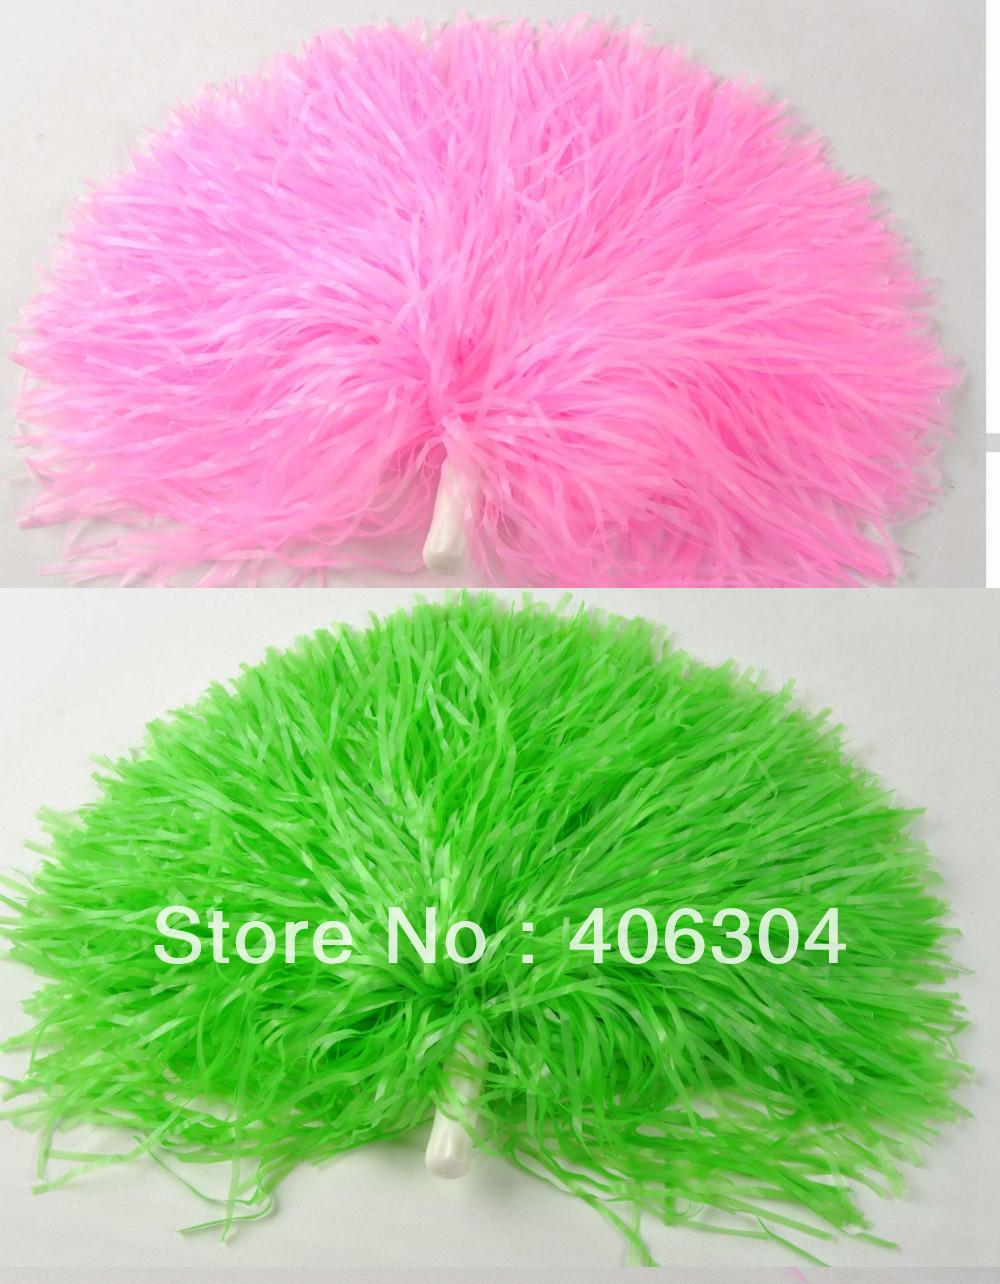 Free shipping,100g plastic PE cheerleading pompom pom pom red blue green,white black yellow ,purple and hot pink ballroom